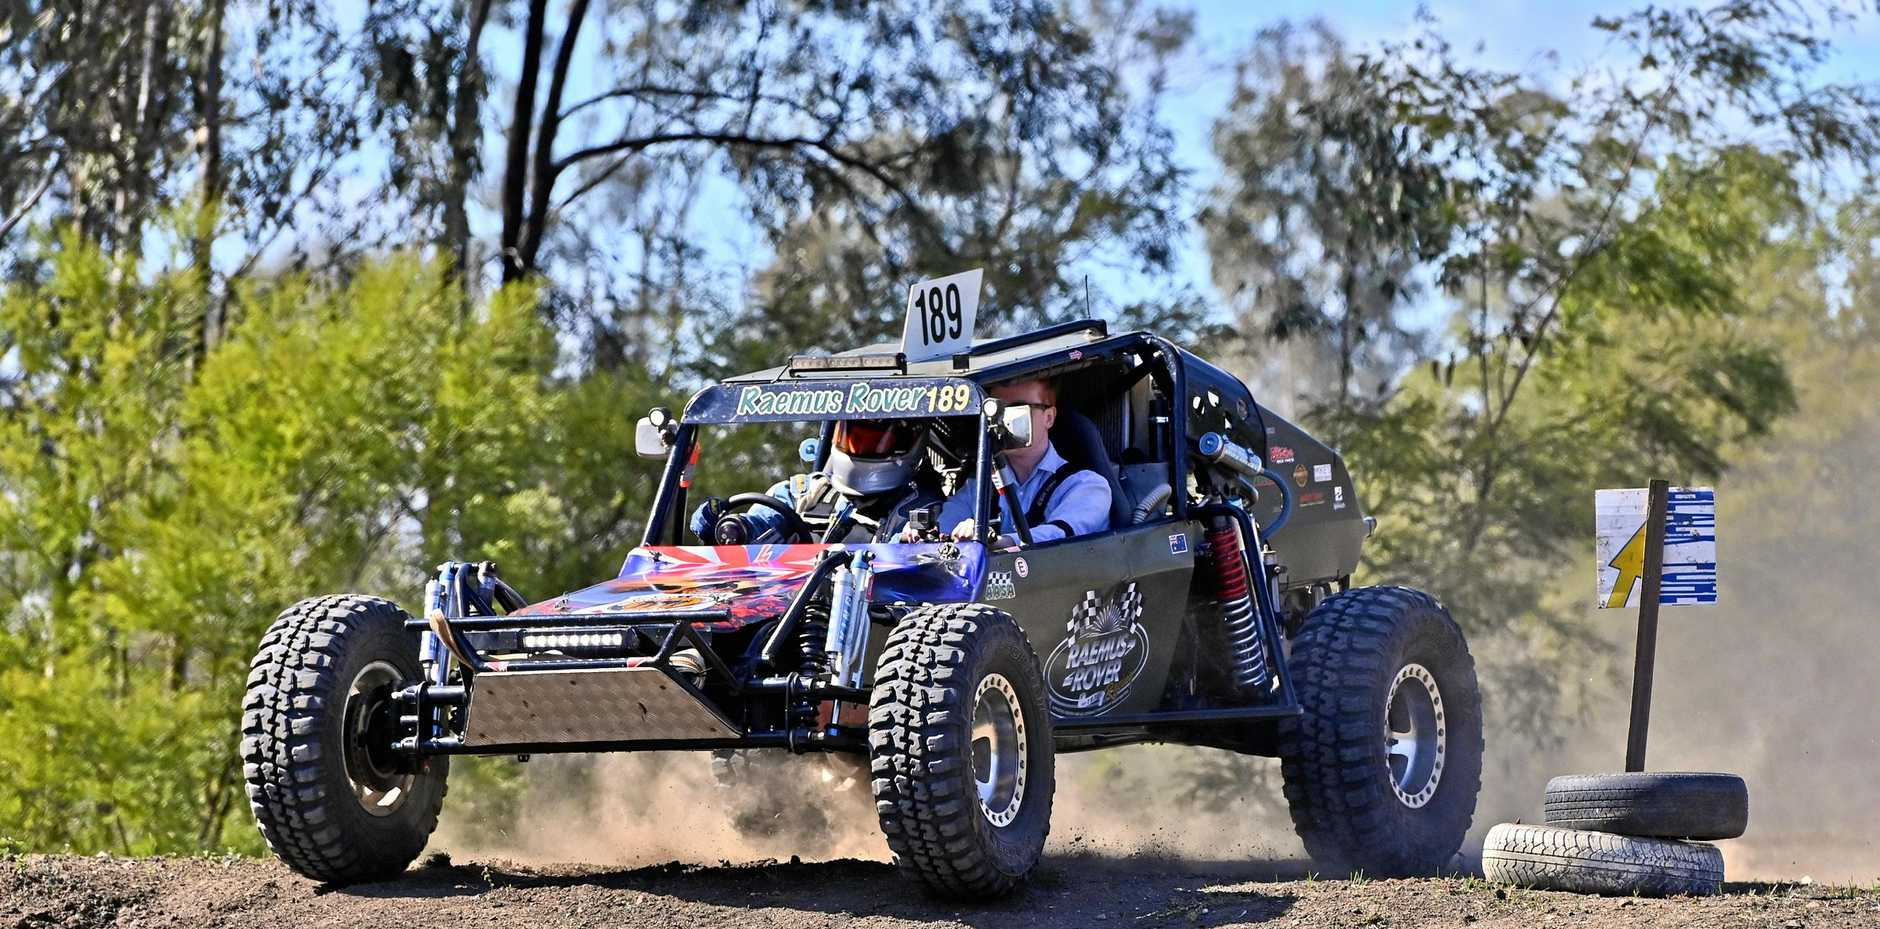 RSL RAEMUS Rover Off-Road Racing Team are based at Willowbank thanks to an agreement with Ipswich City Council